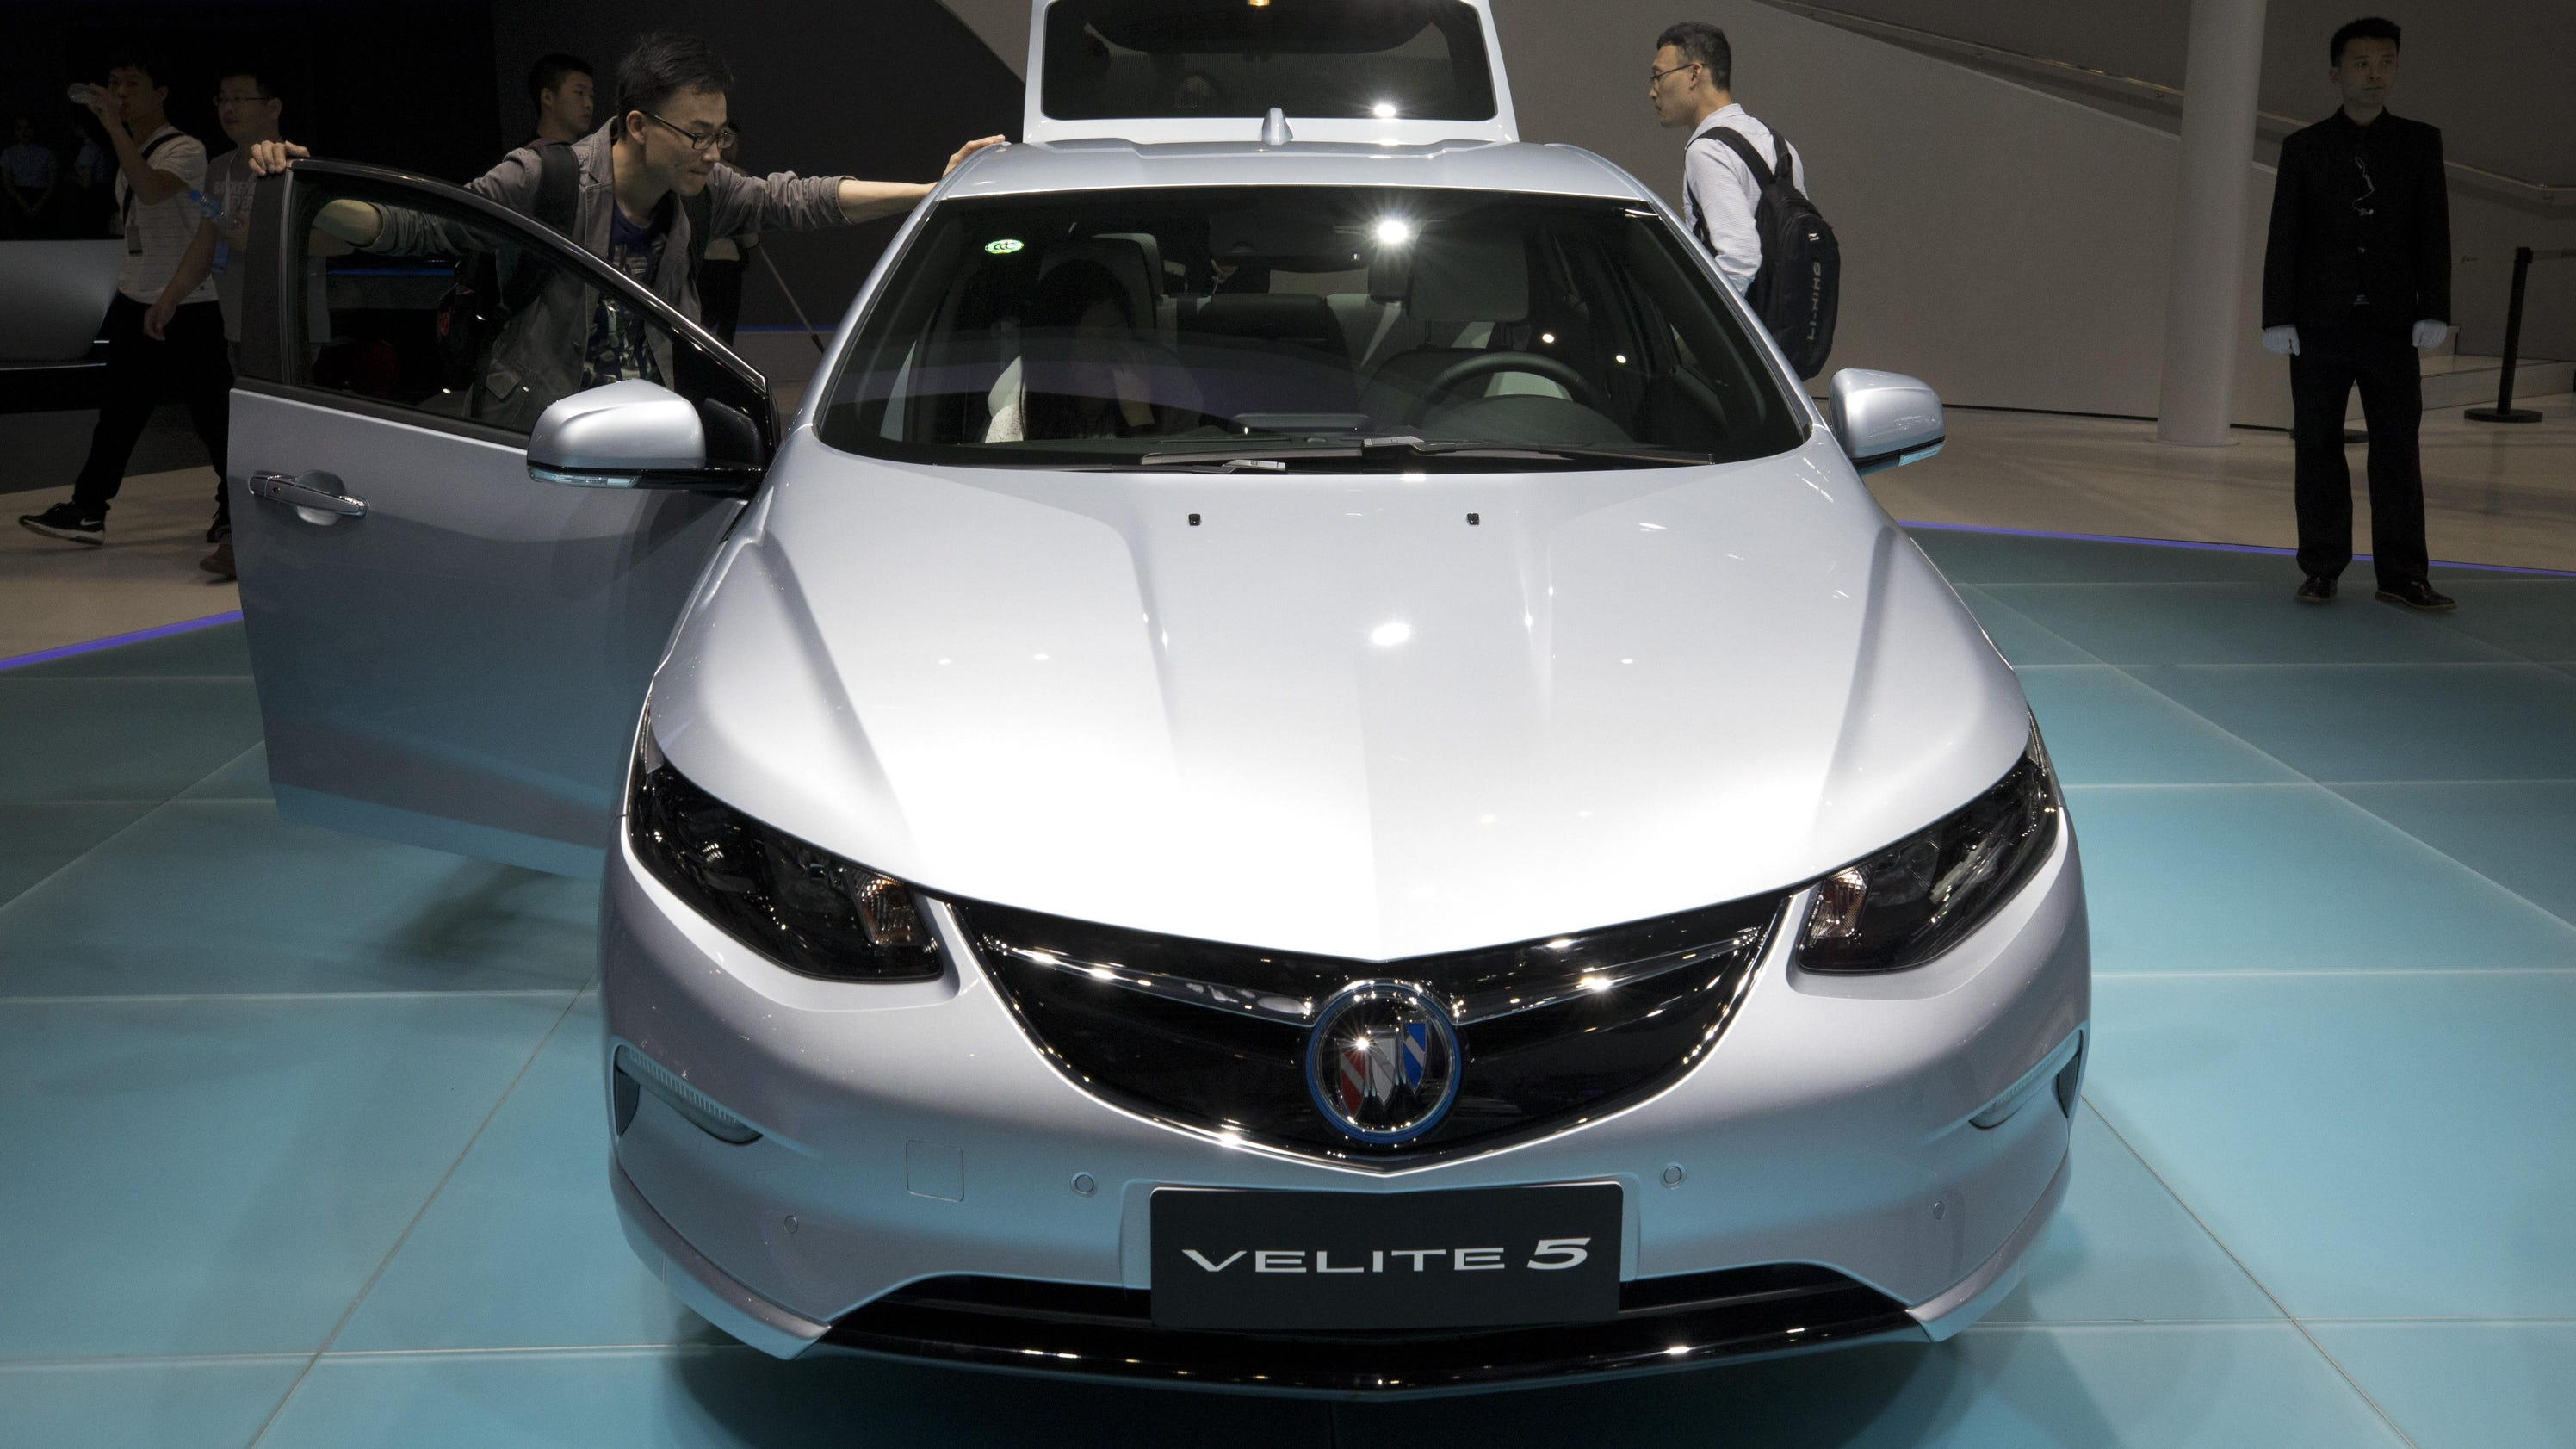 GM plans to launch 10 electric cars in China by 2020